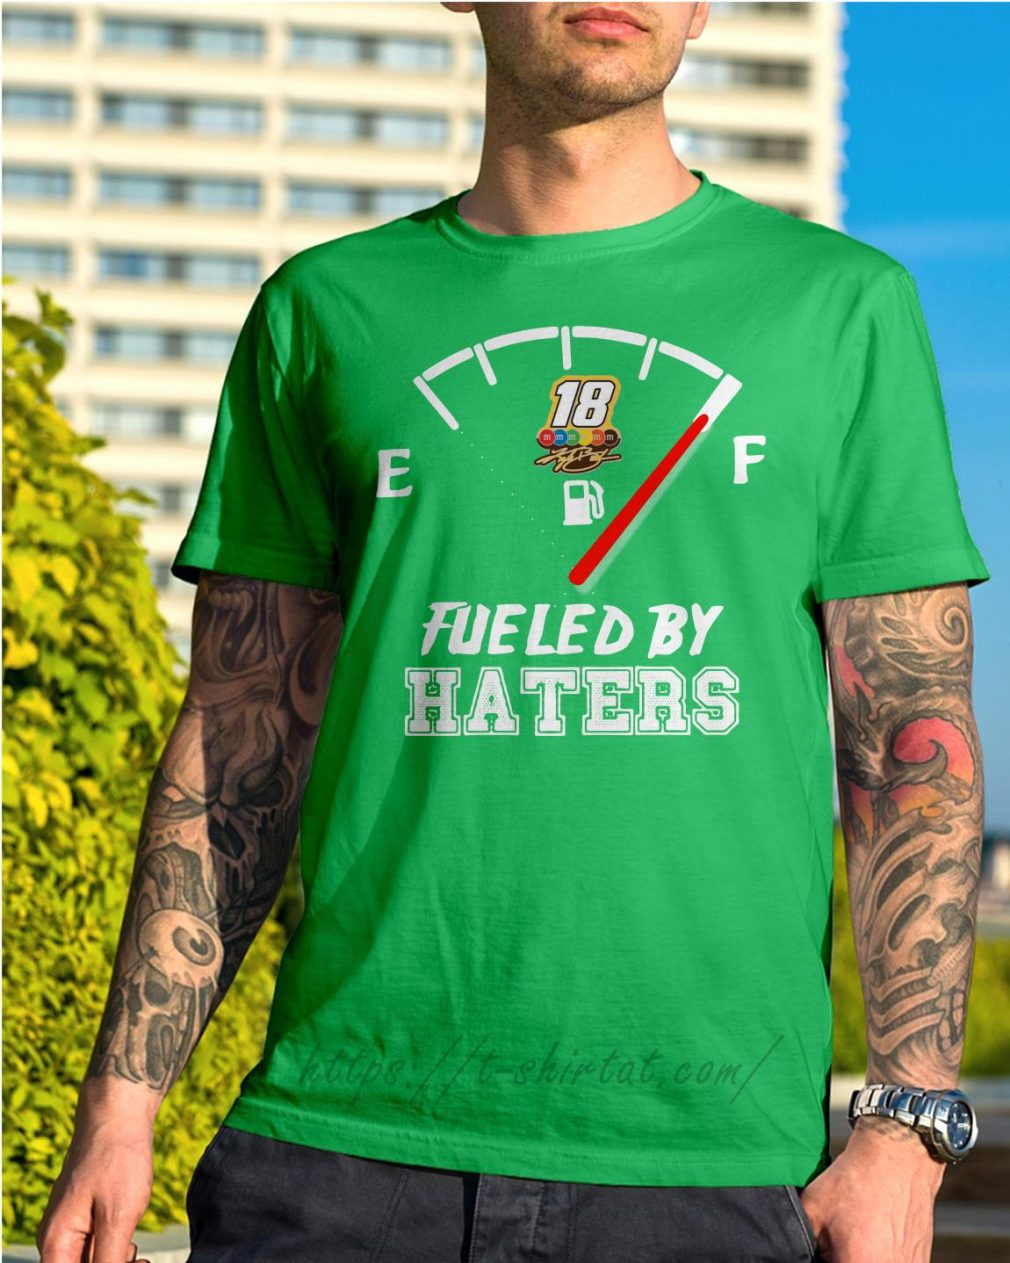 Kyle Busch fueled by haters Shirt green